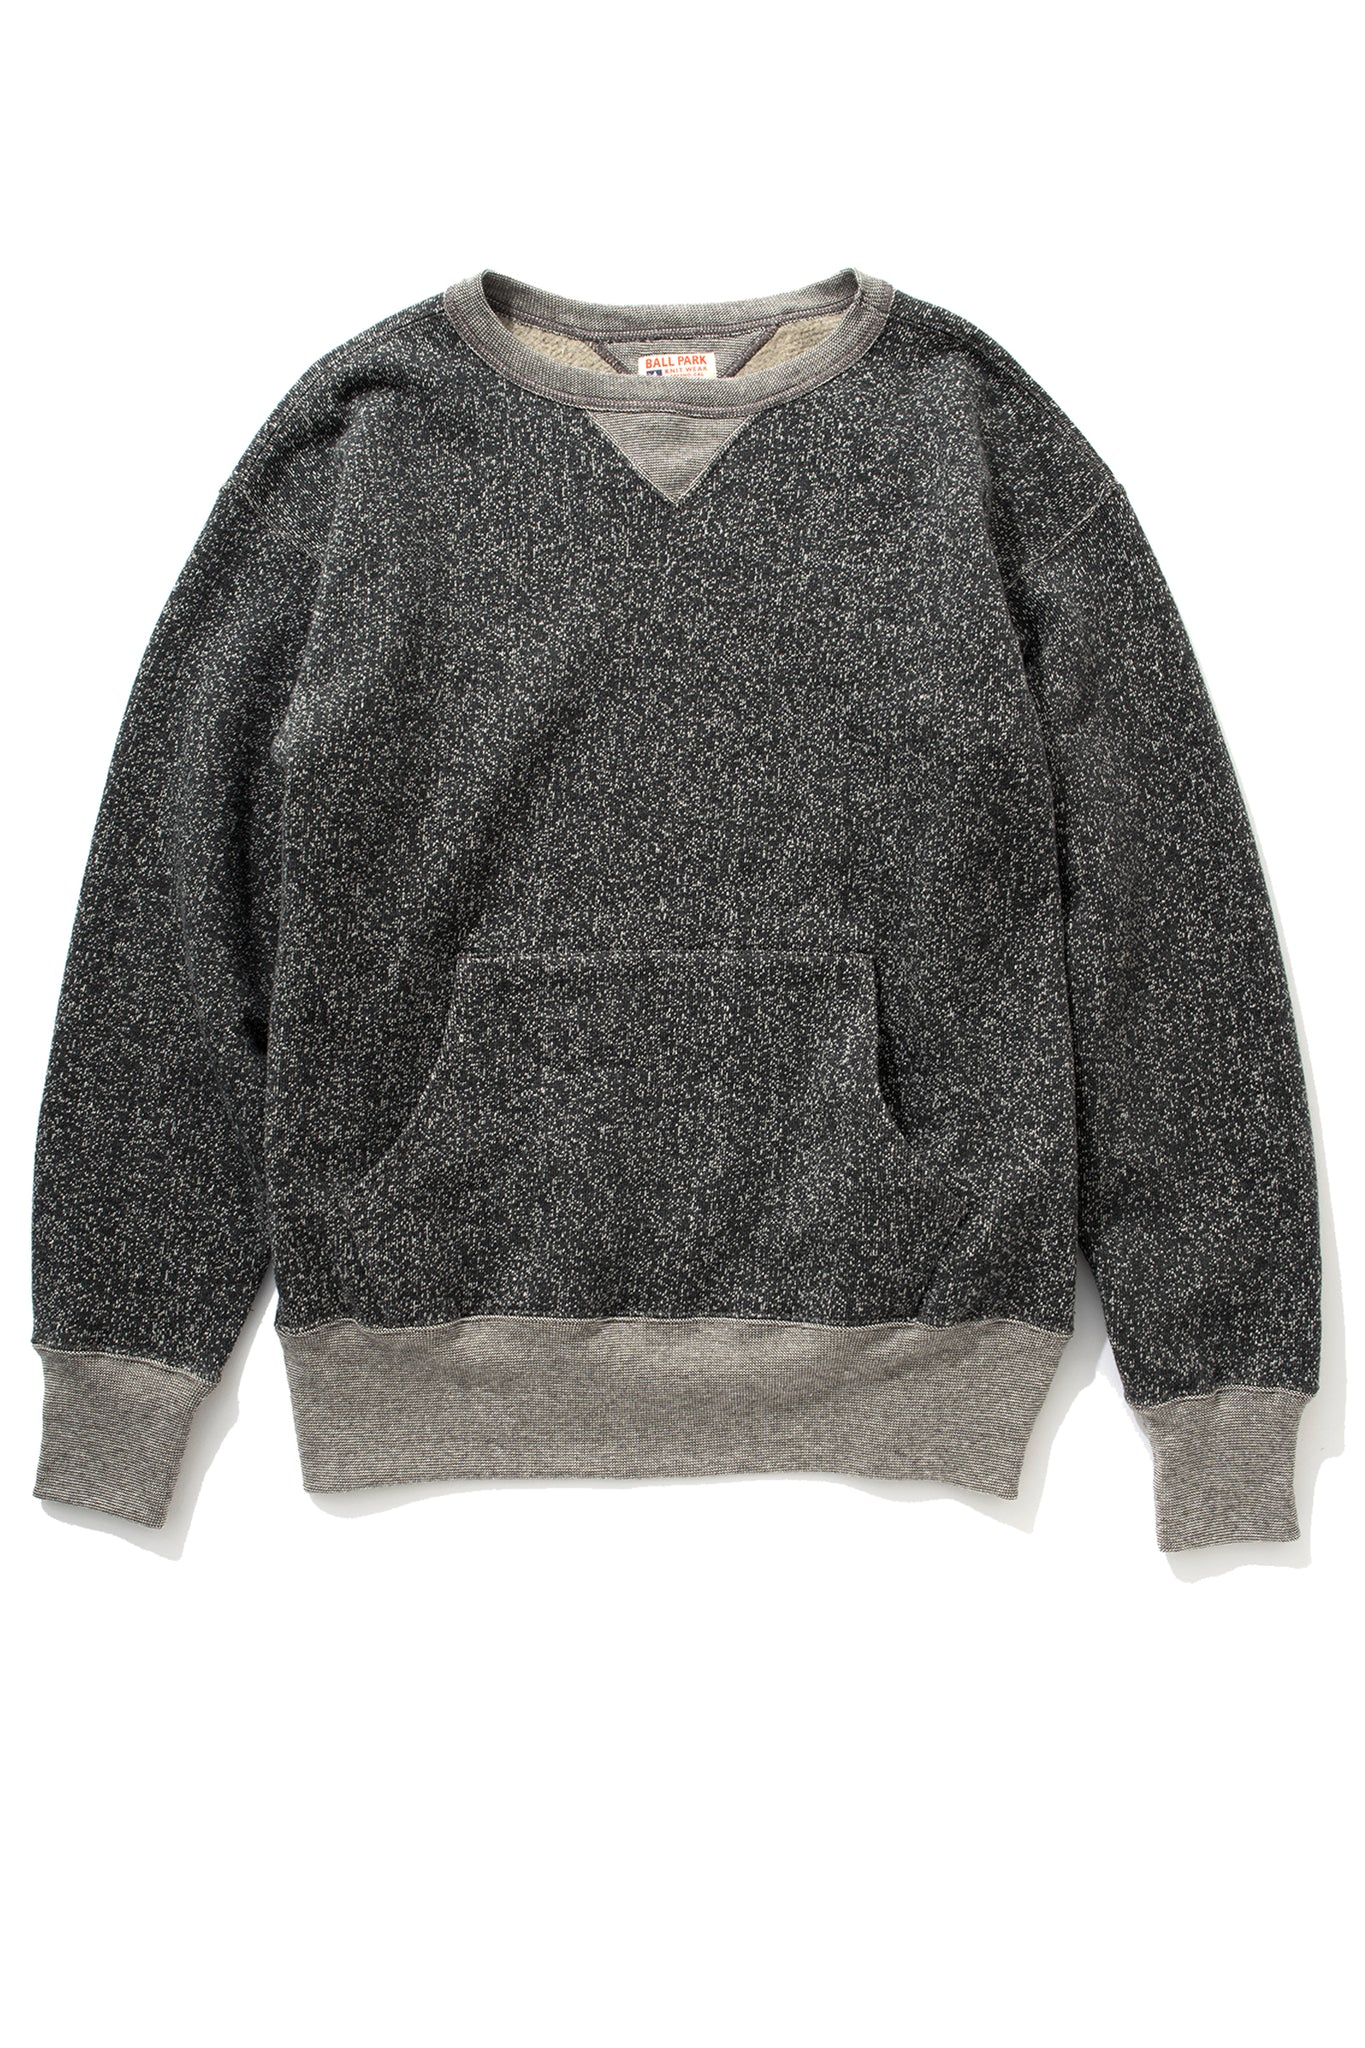 SALT & PEPPER CREWNECK SWEATSHIRT